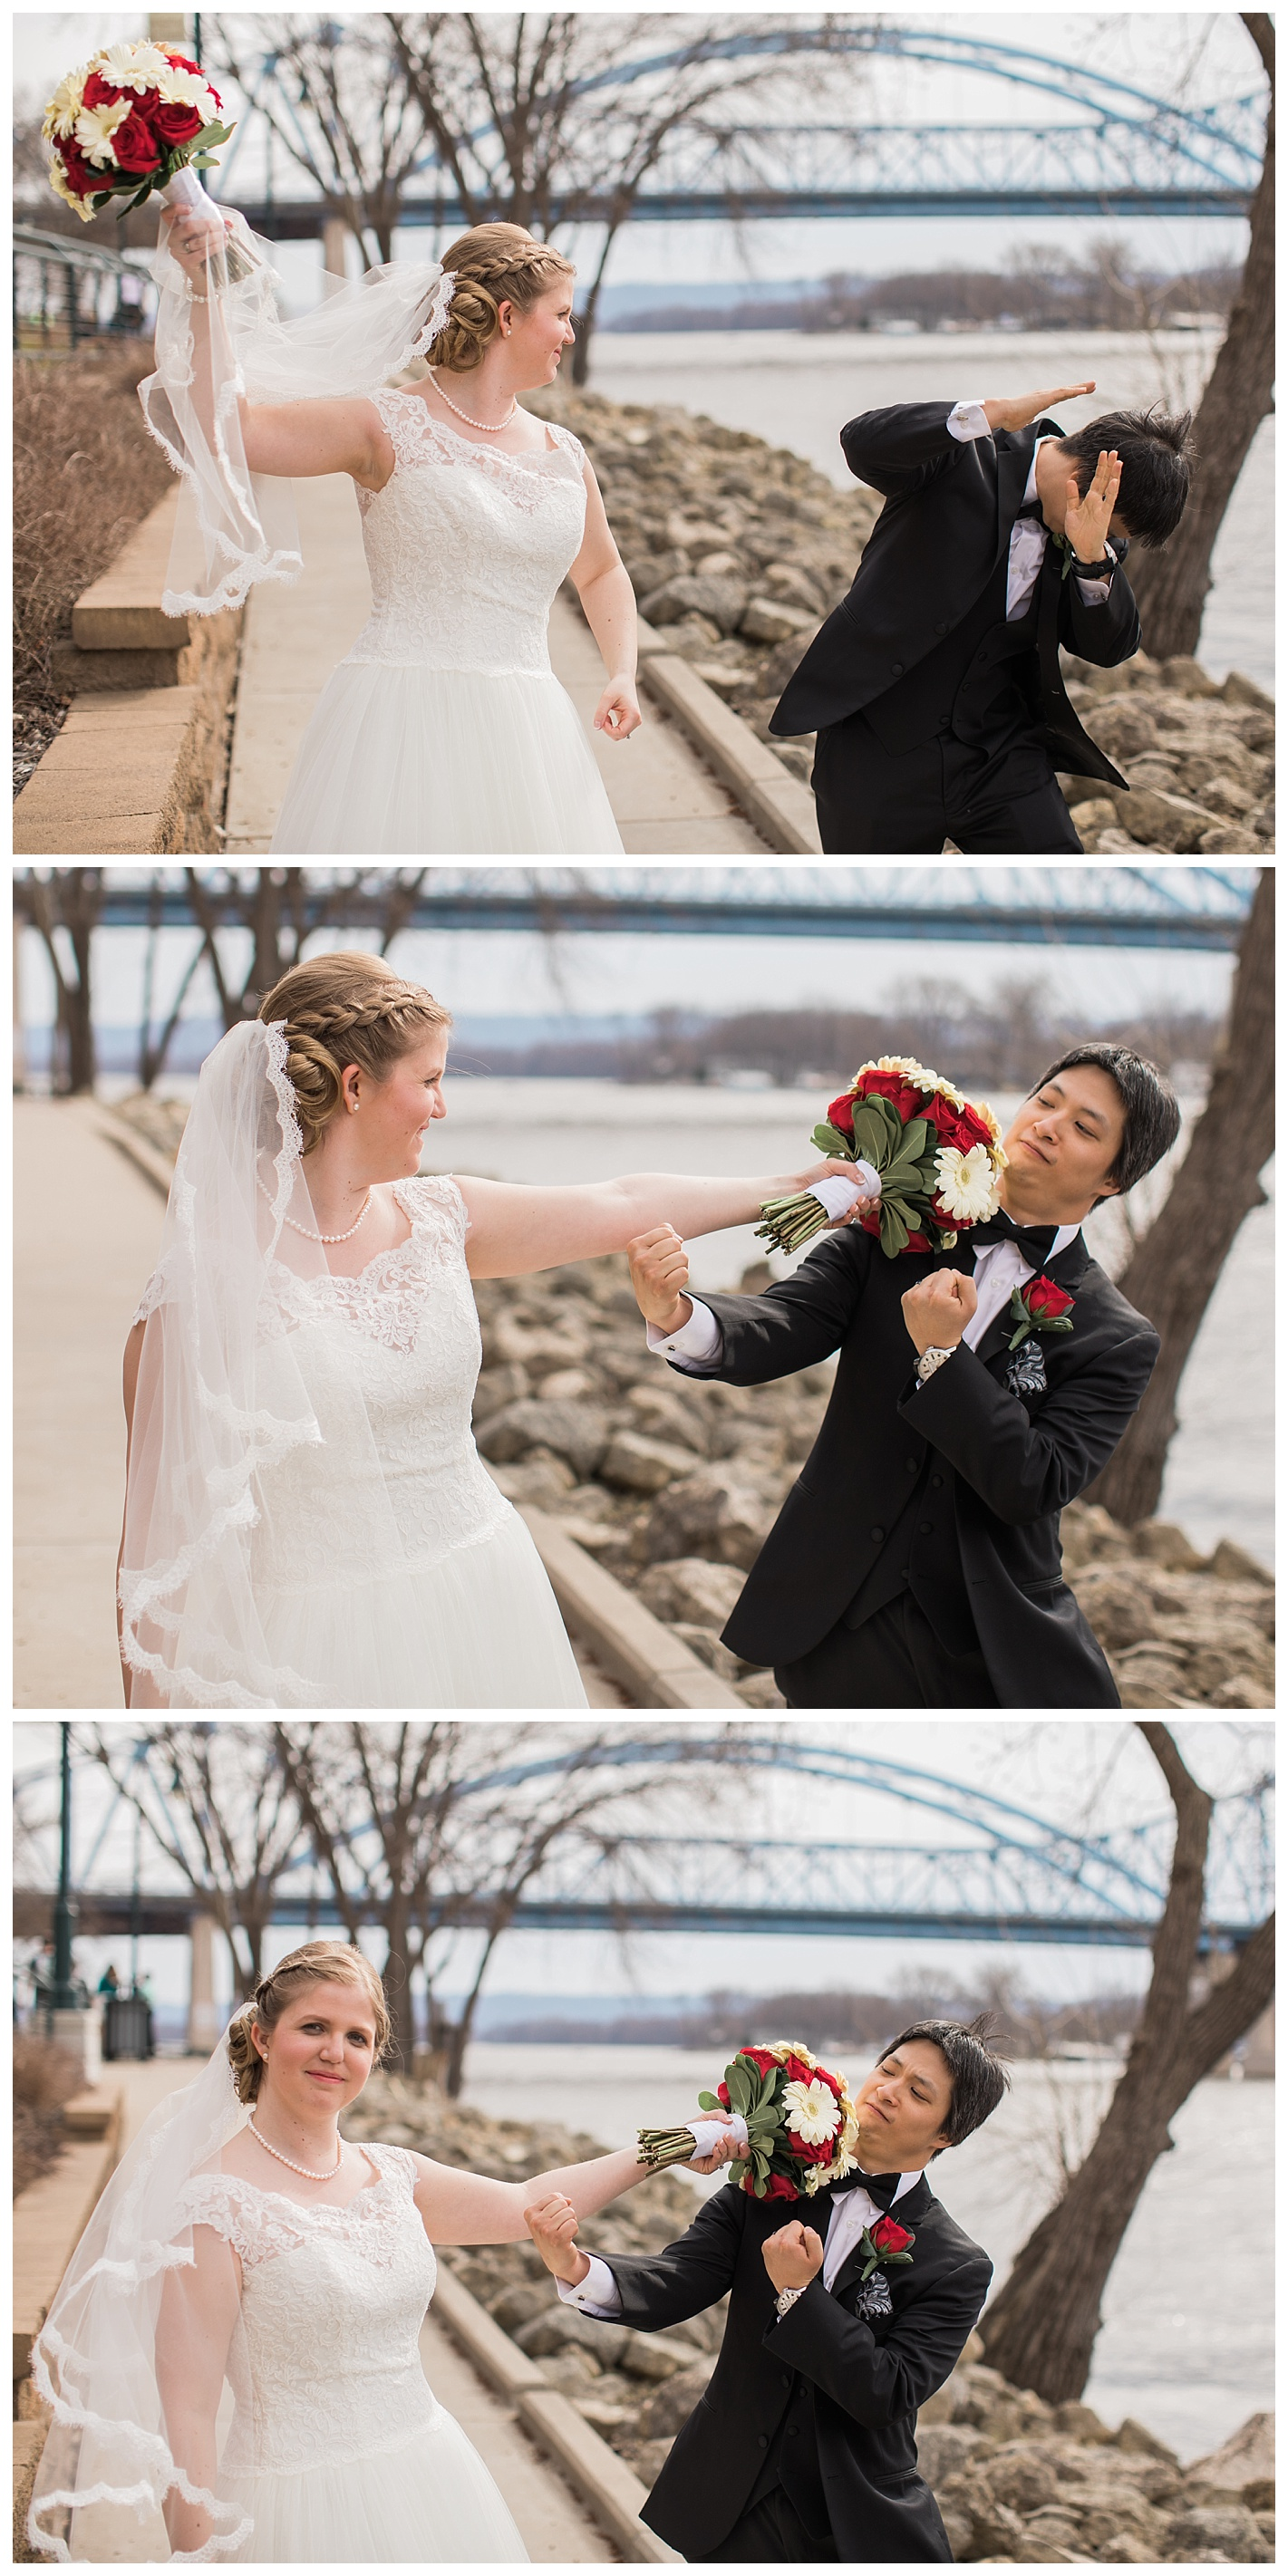 And you have to have some fun photos showing the bride and groom's personality!